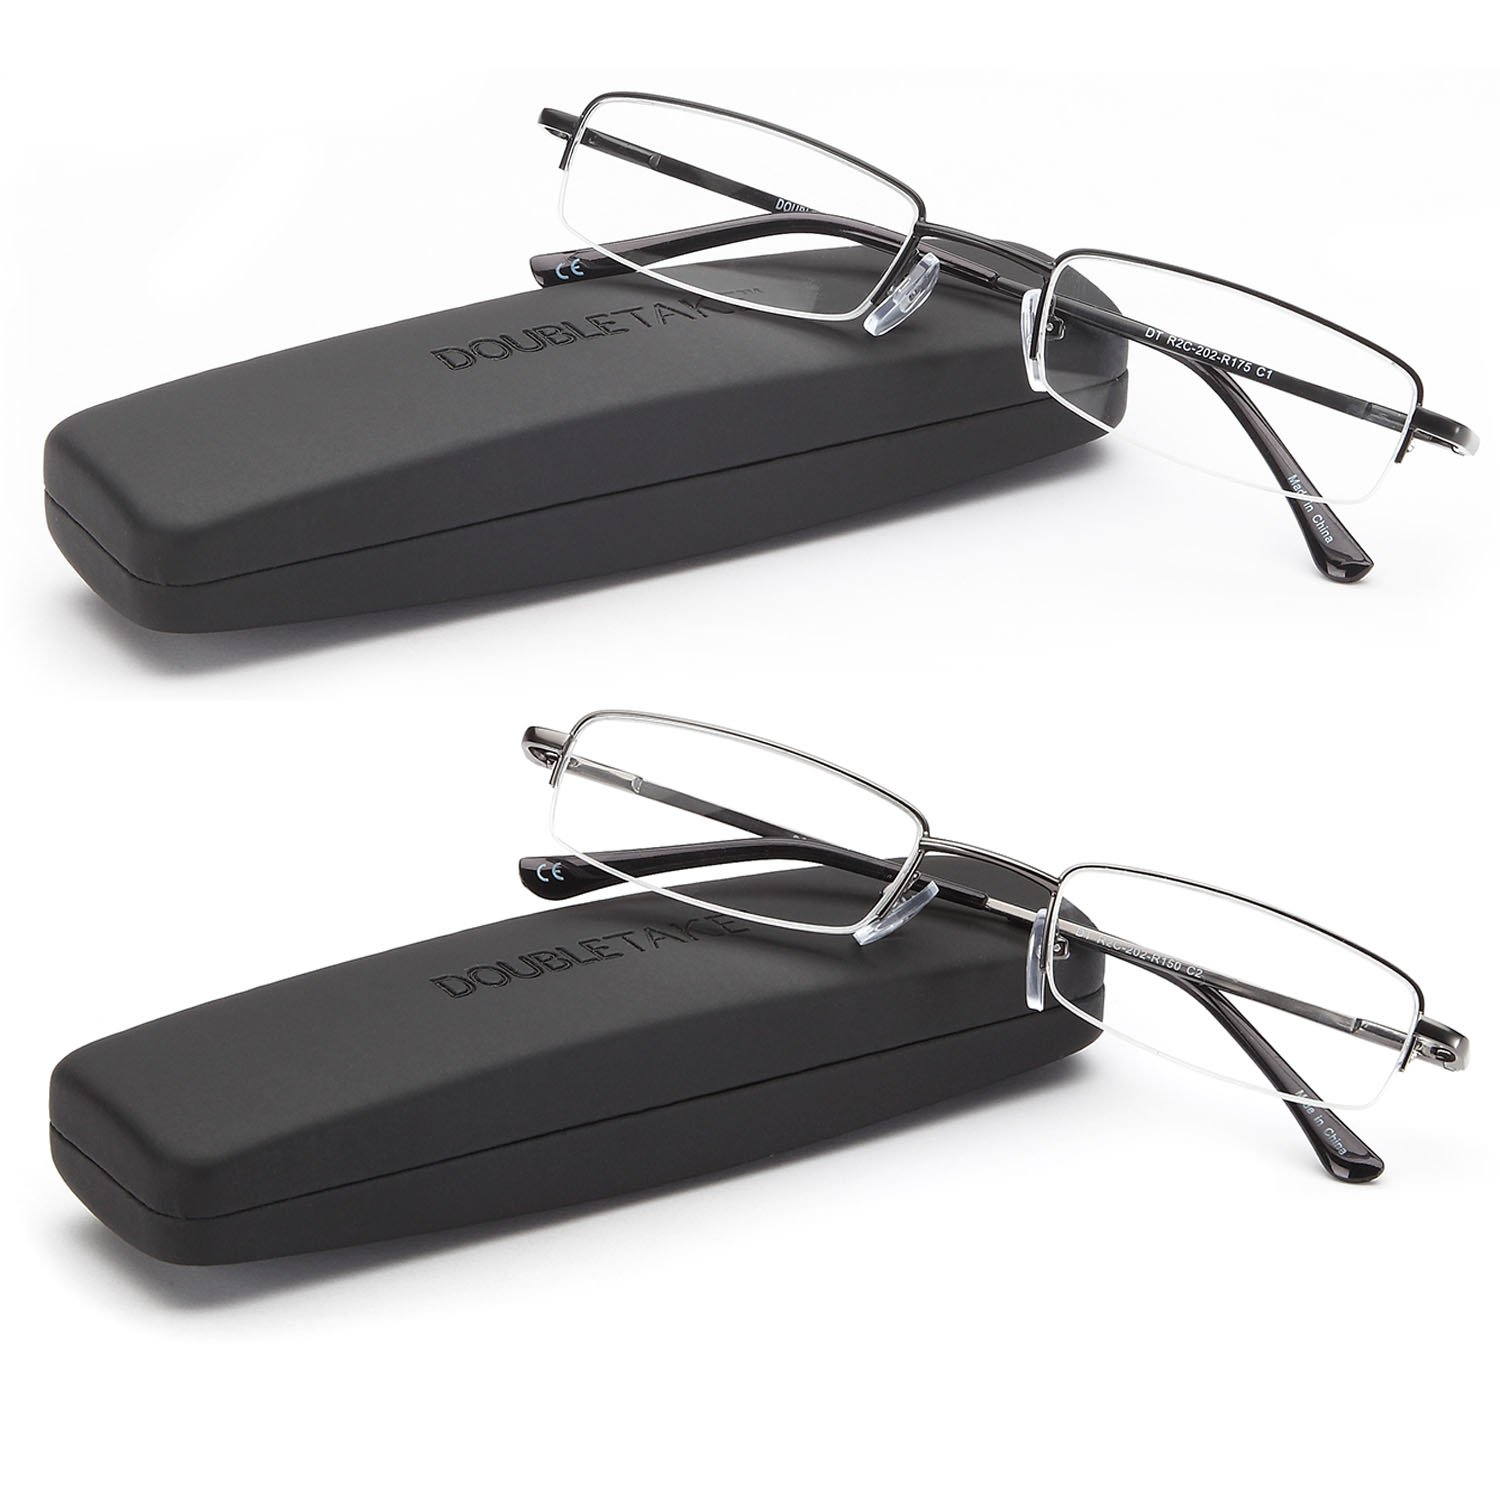 DOUBLETAKE Reading Glasses - 2 Pairs Compact Case Semi Rimless Readers - 1.50 by DOUBLETAKE